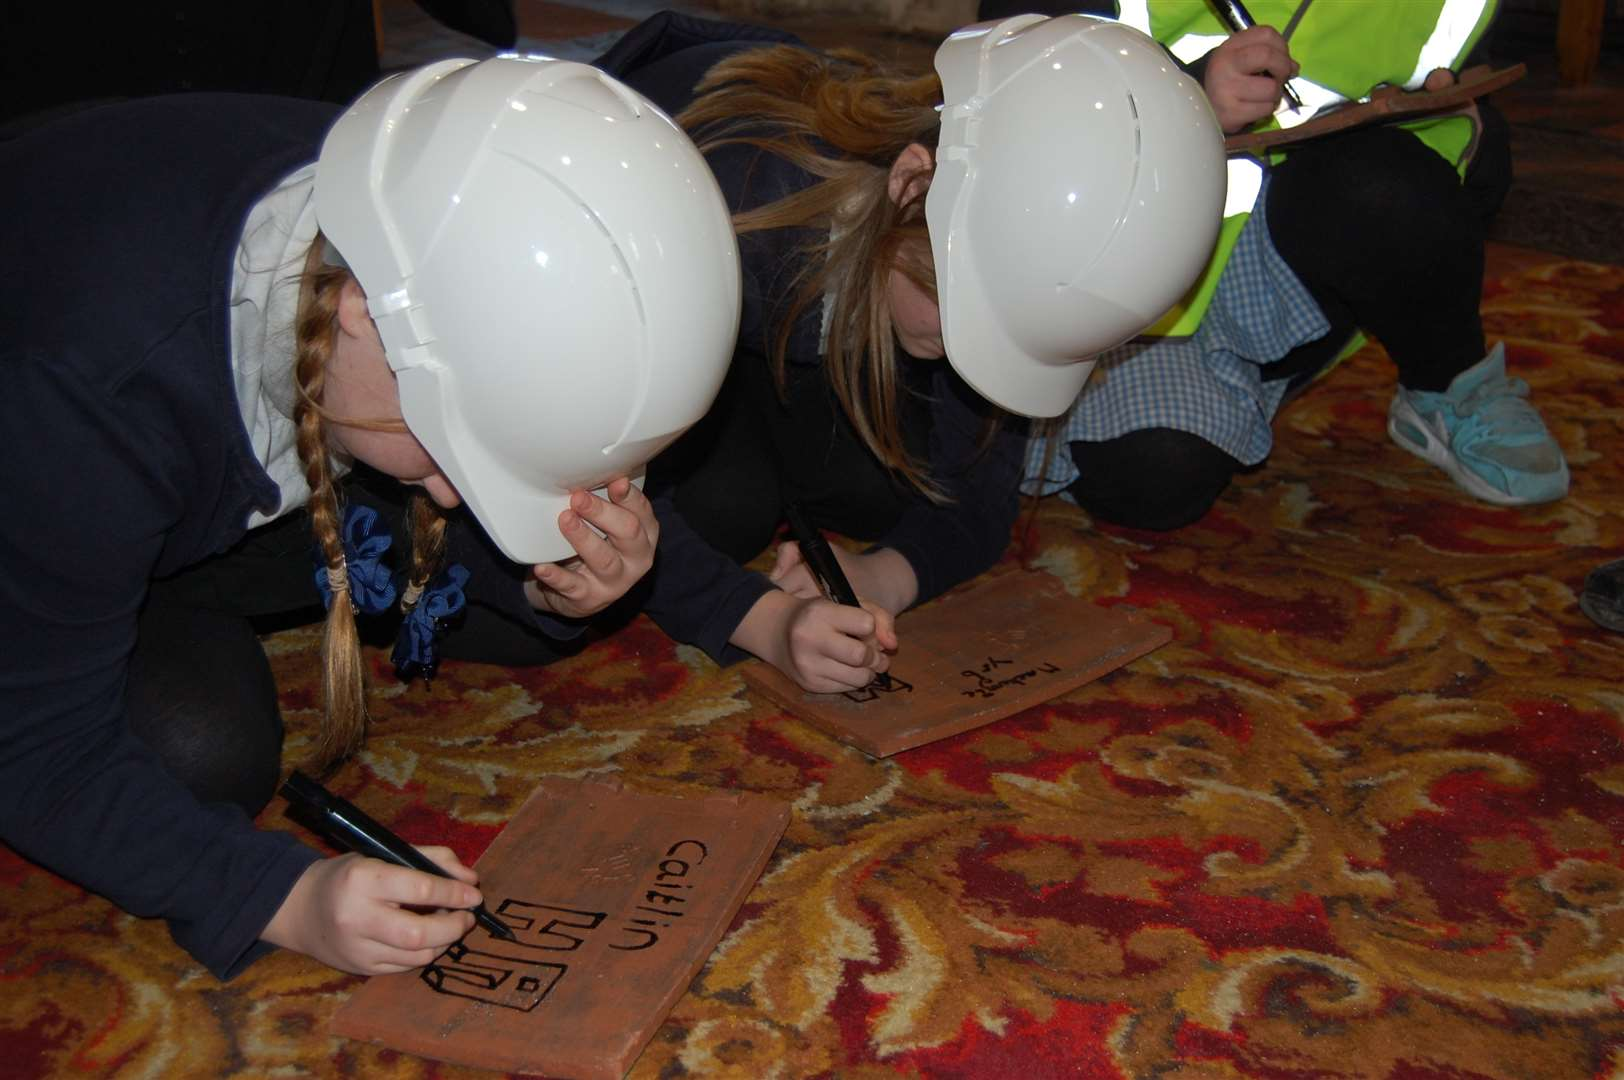 Pupils from Lawn Primary School each sign a tile for the church's new roof.